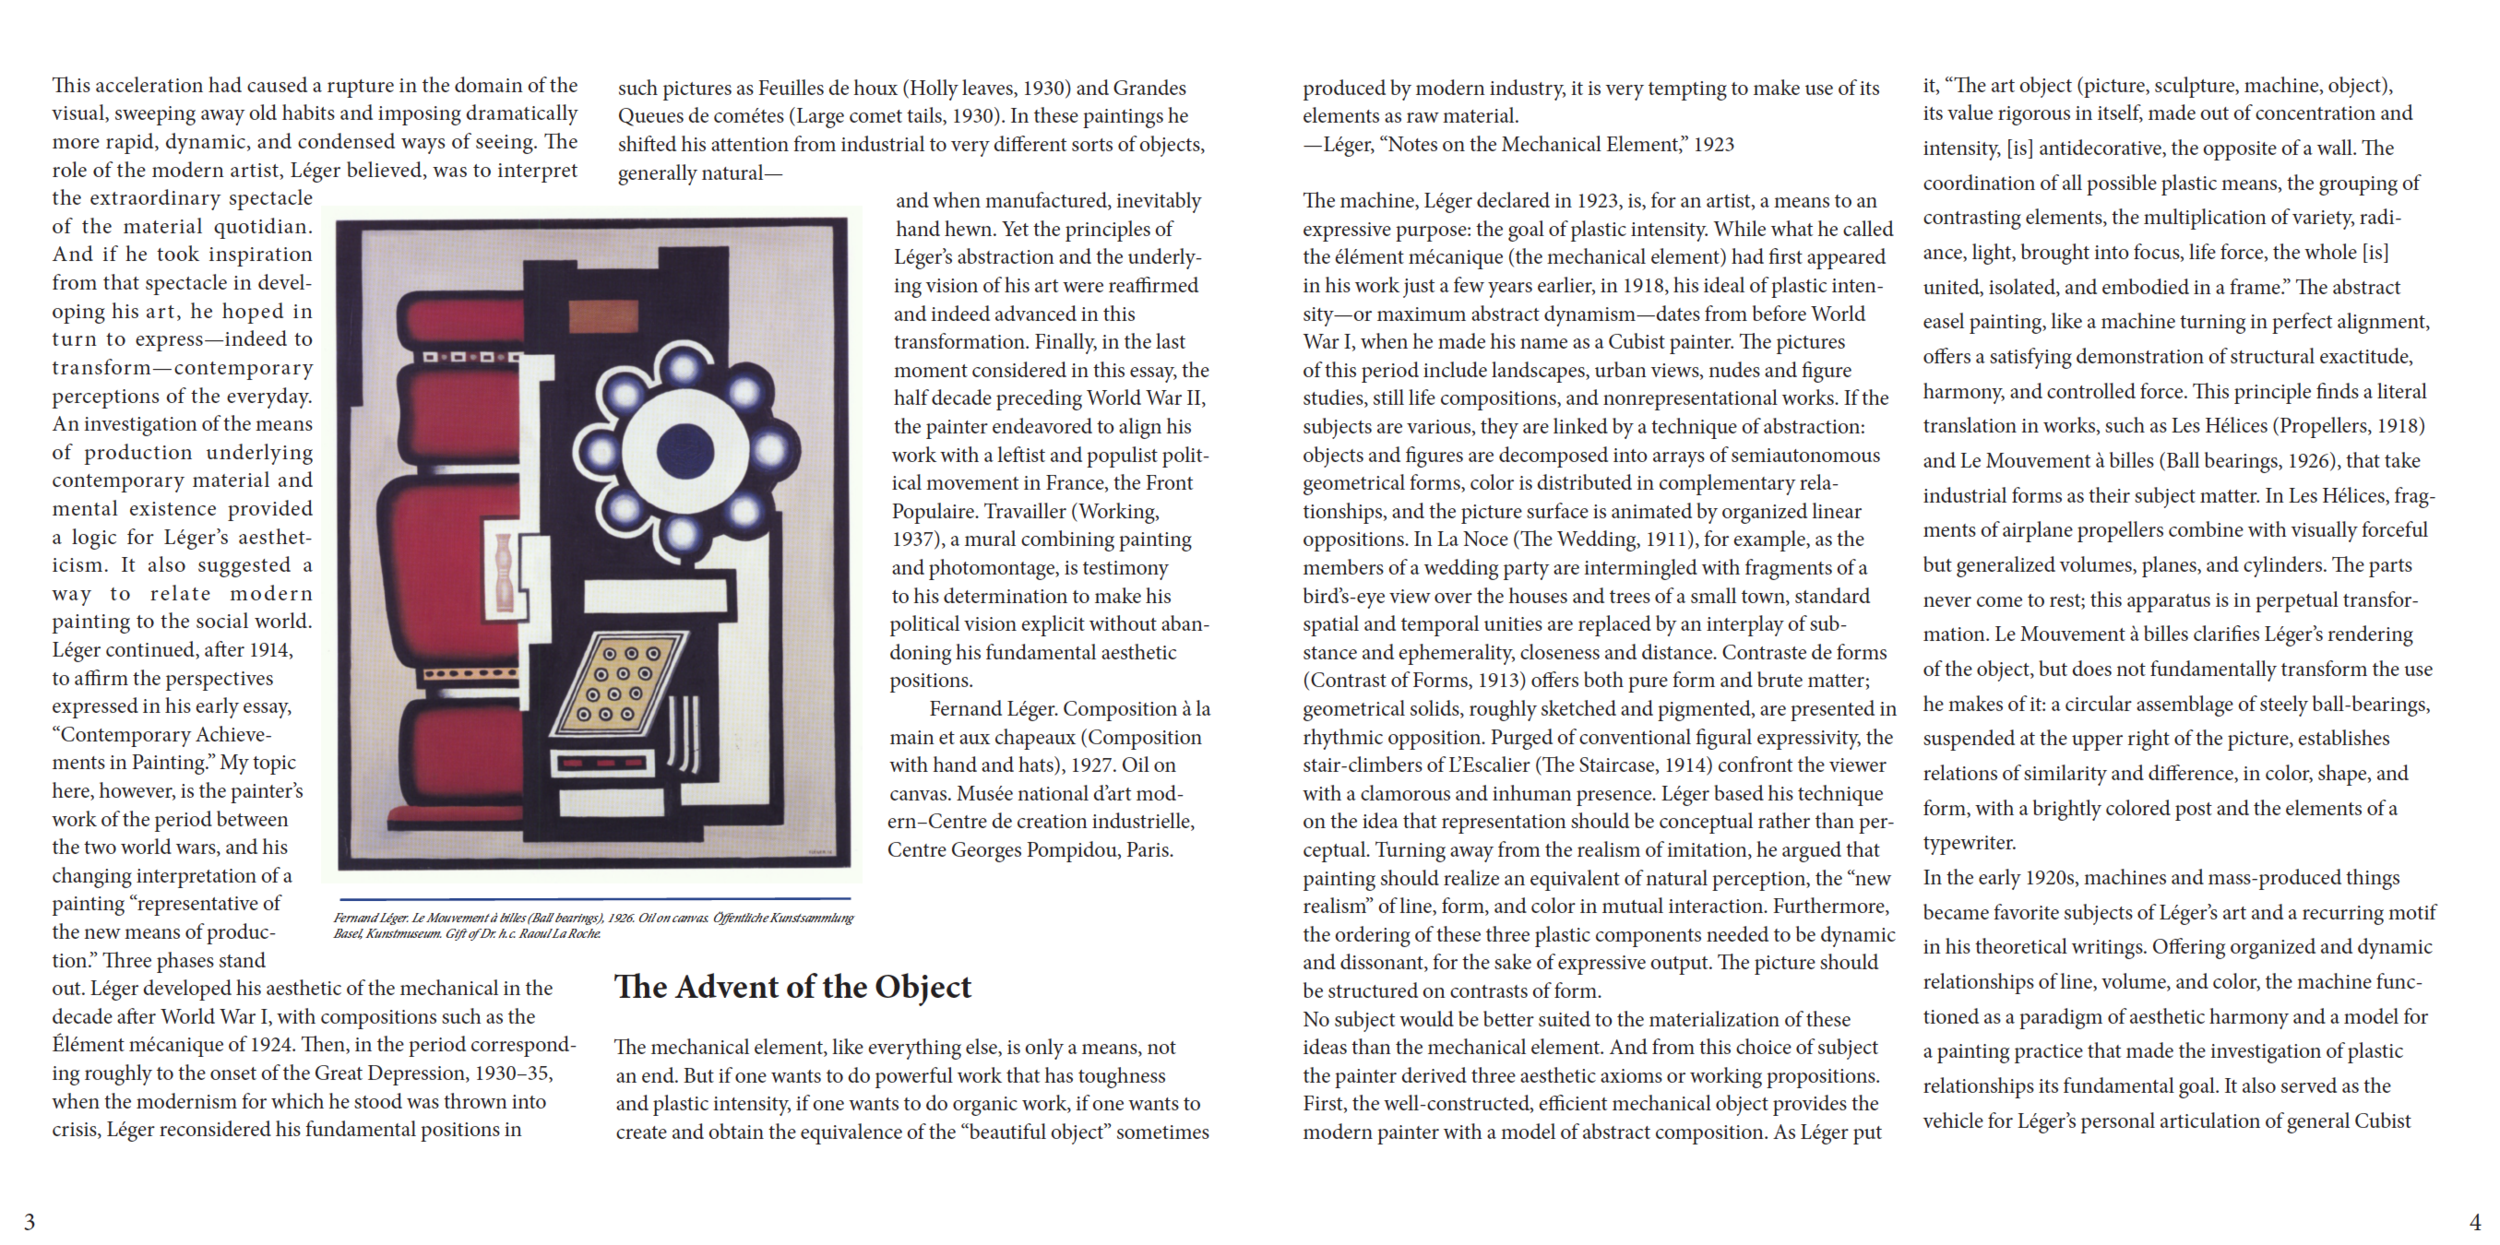 Inner chapter page spread. Dealing with large blocks of text.